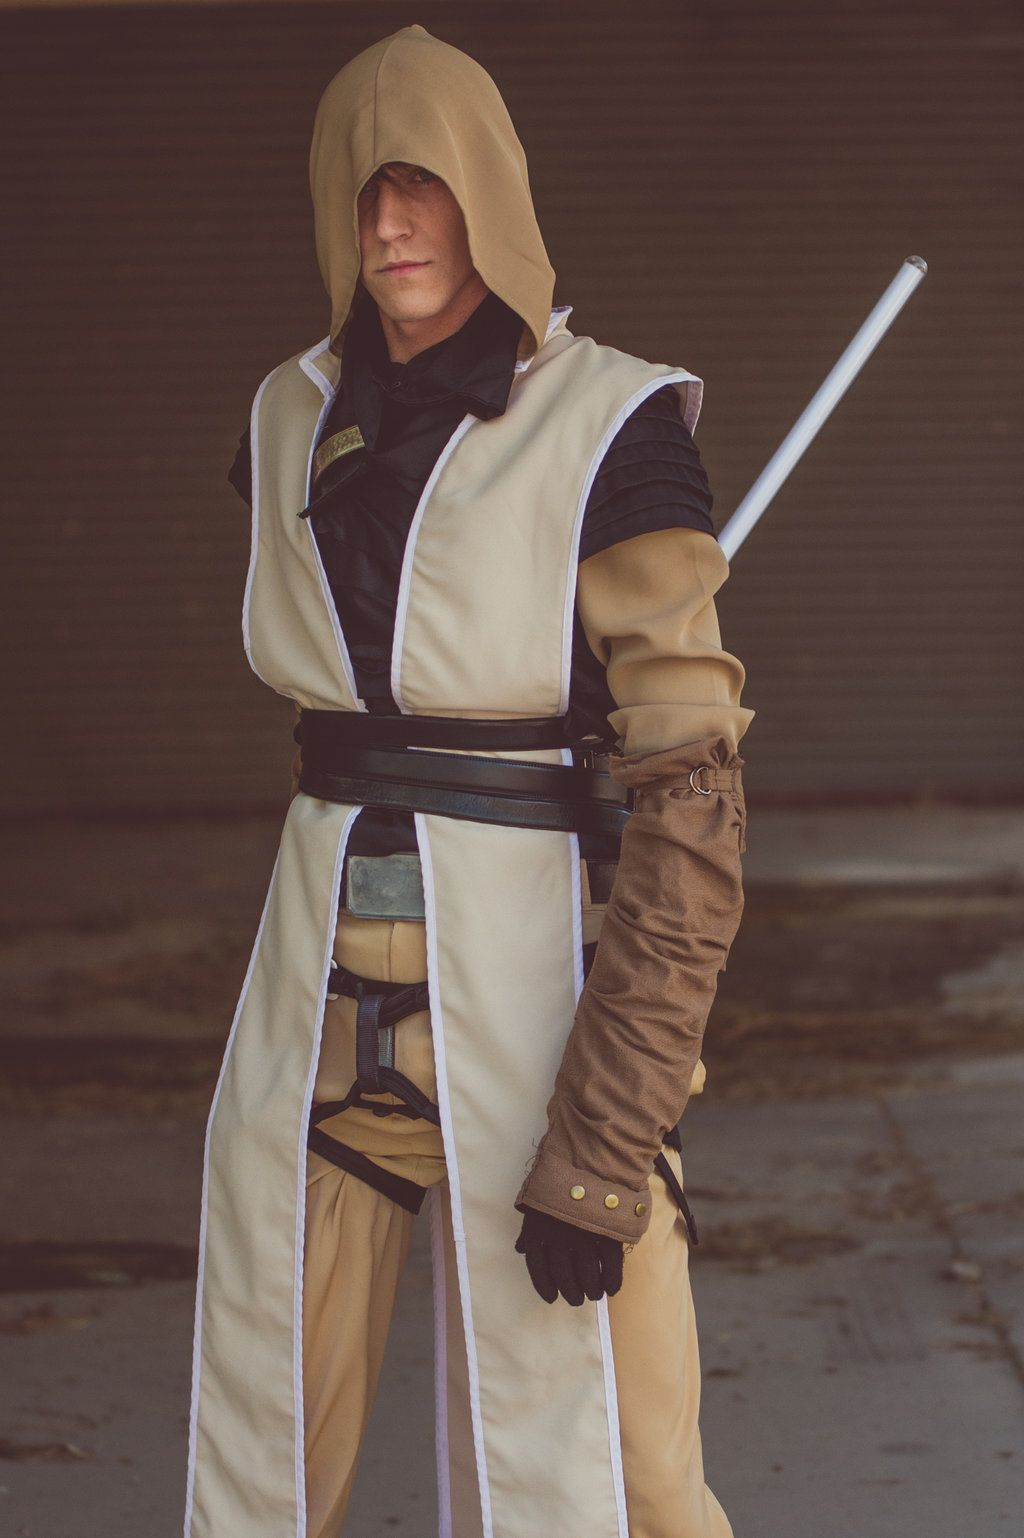 starkiller jedi costumes - Google Search & starkiller jedi costumes - Google Search | Costumes by Mandi ...